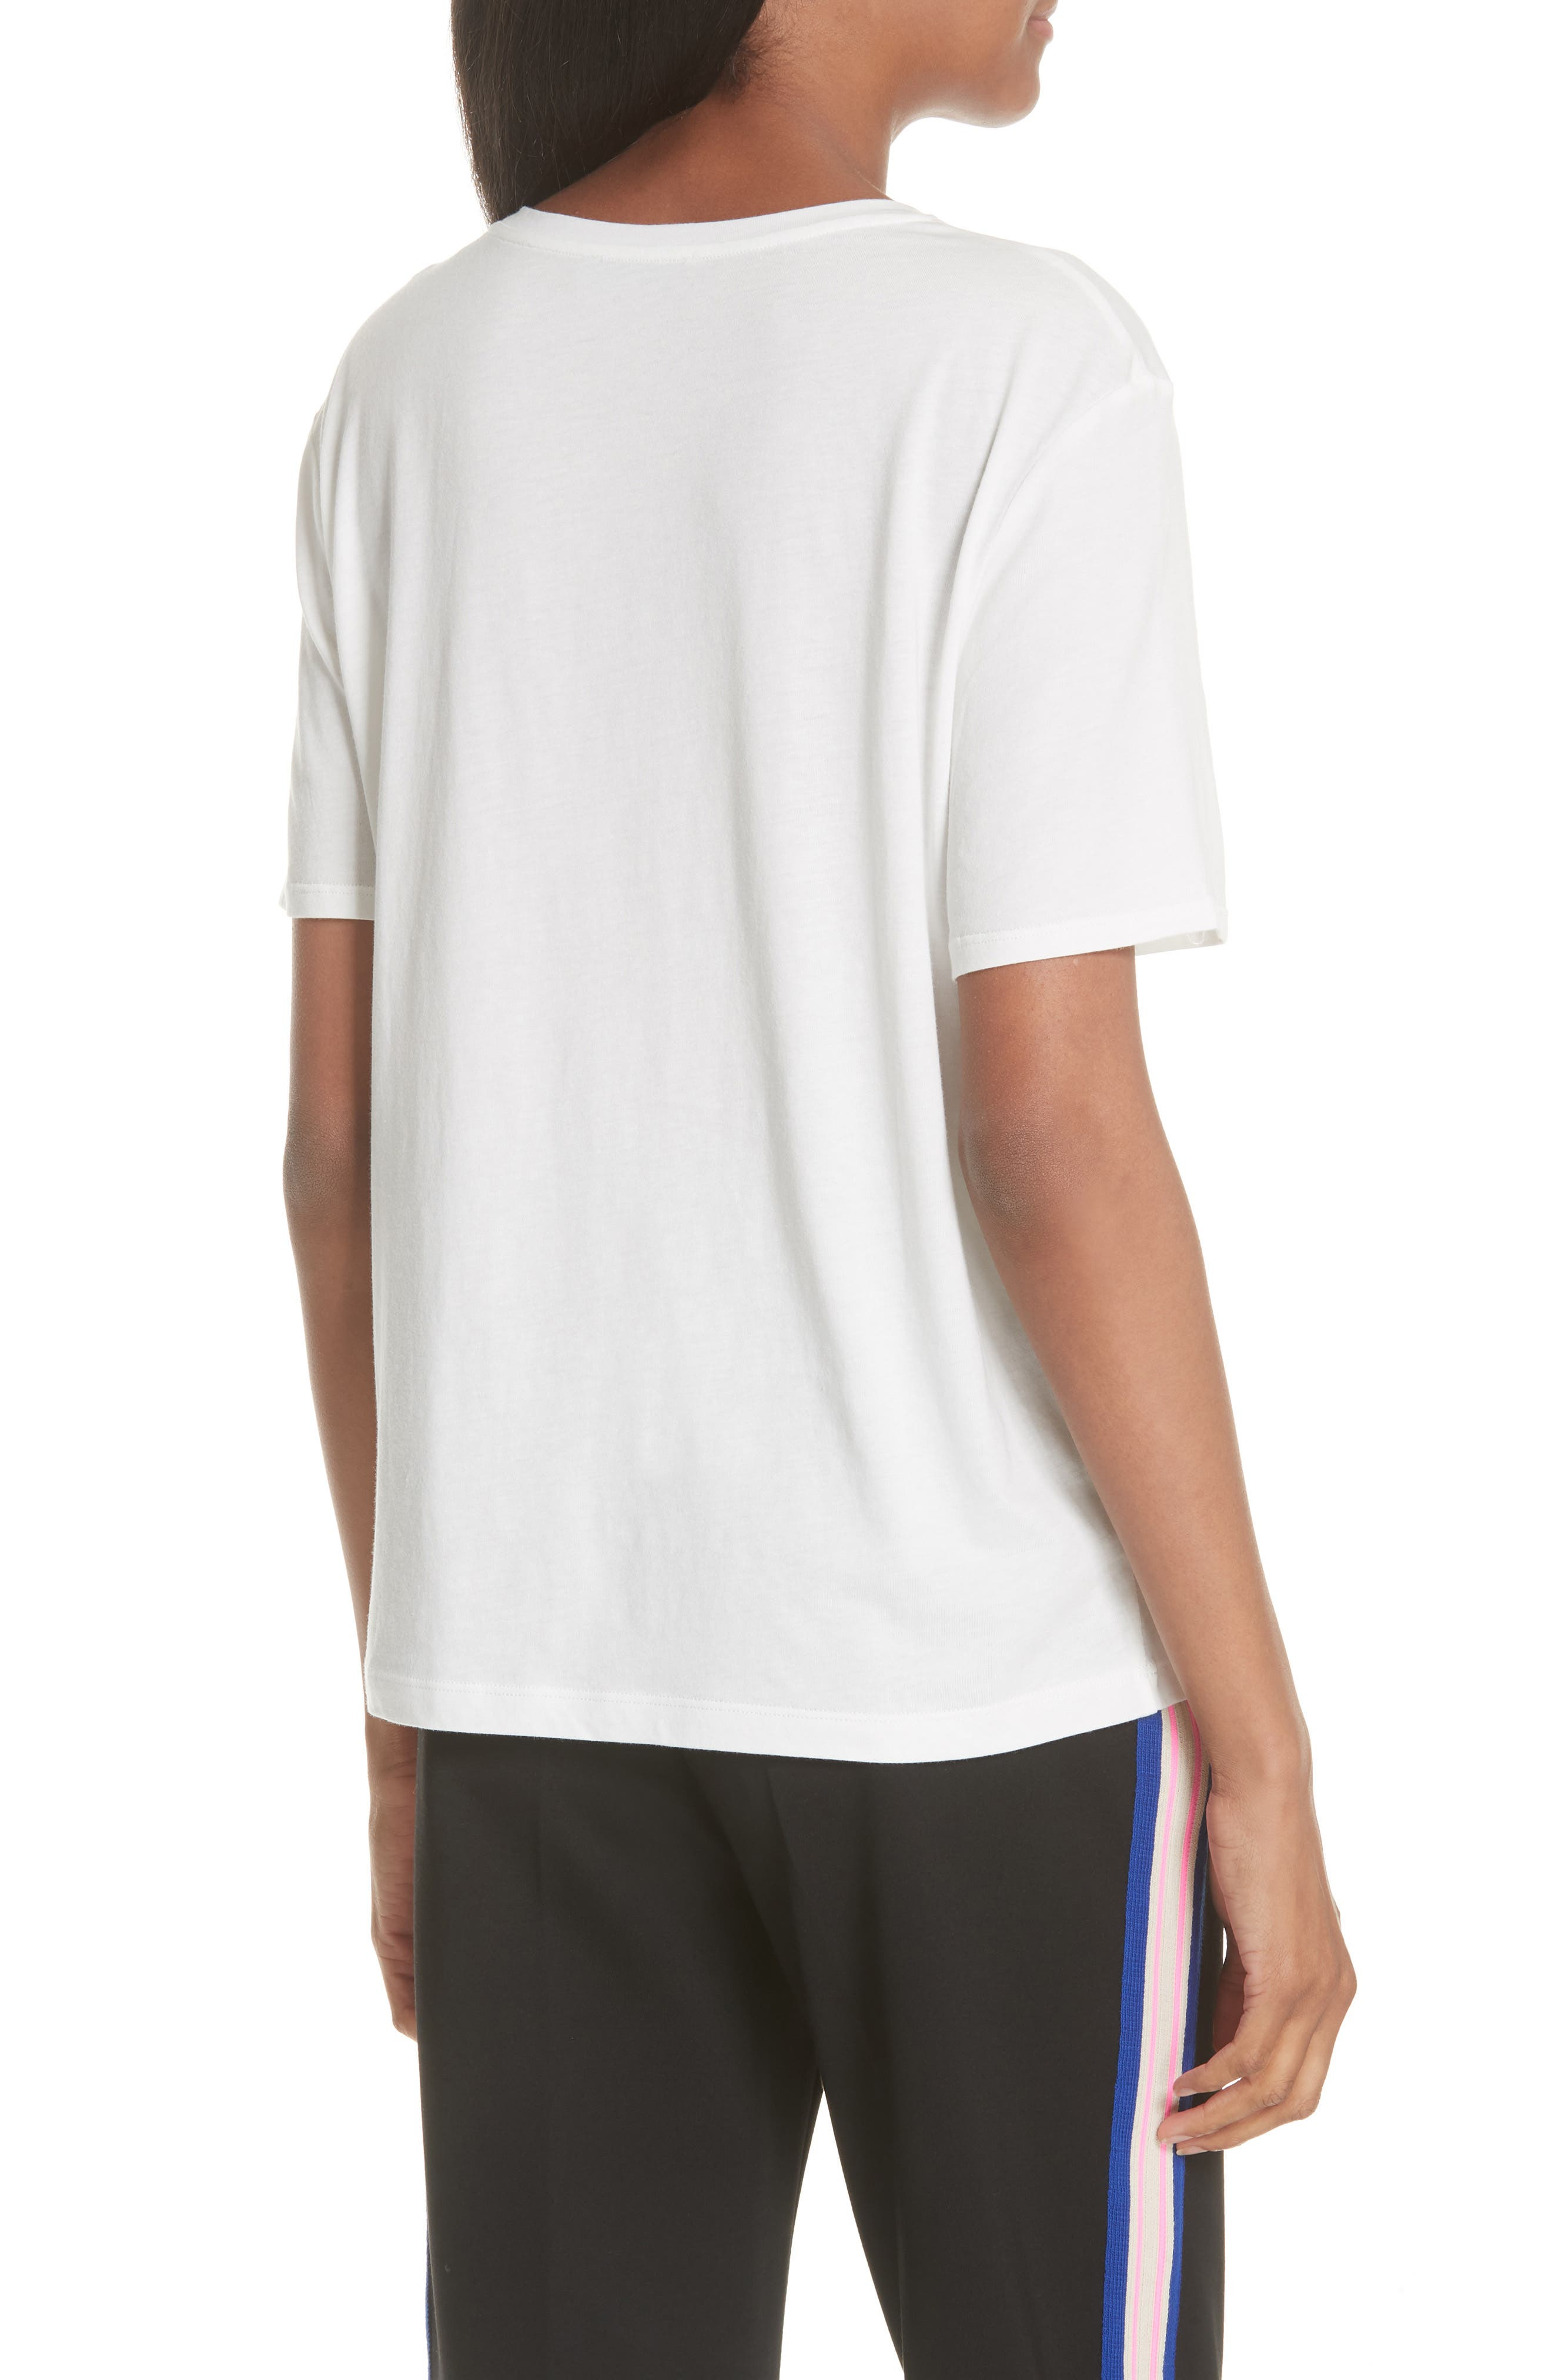 SANDRO,                             Embroidery Cotton Blend Tee,                             Alternate thumbnail 2, color,                             100